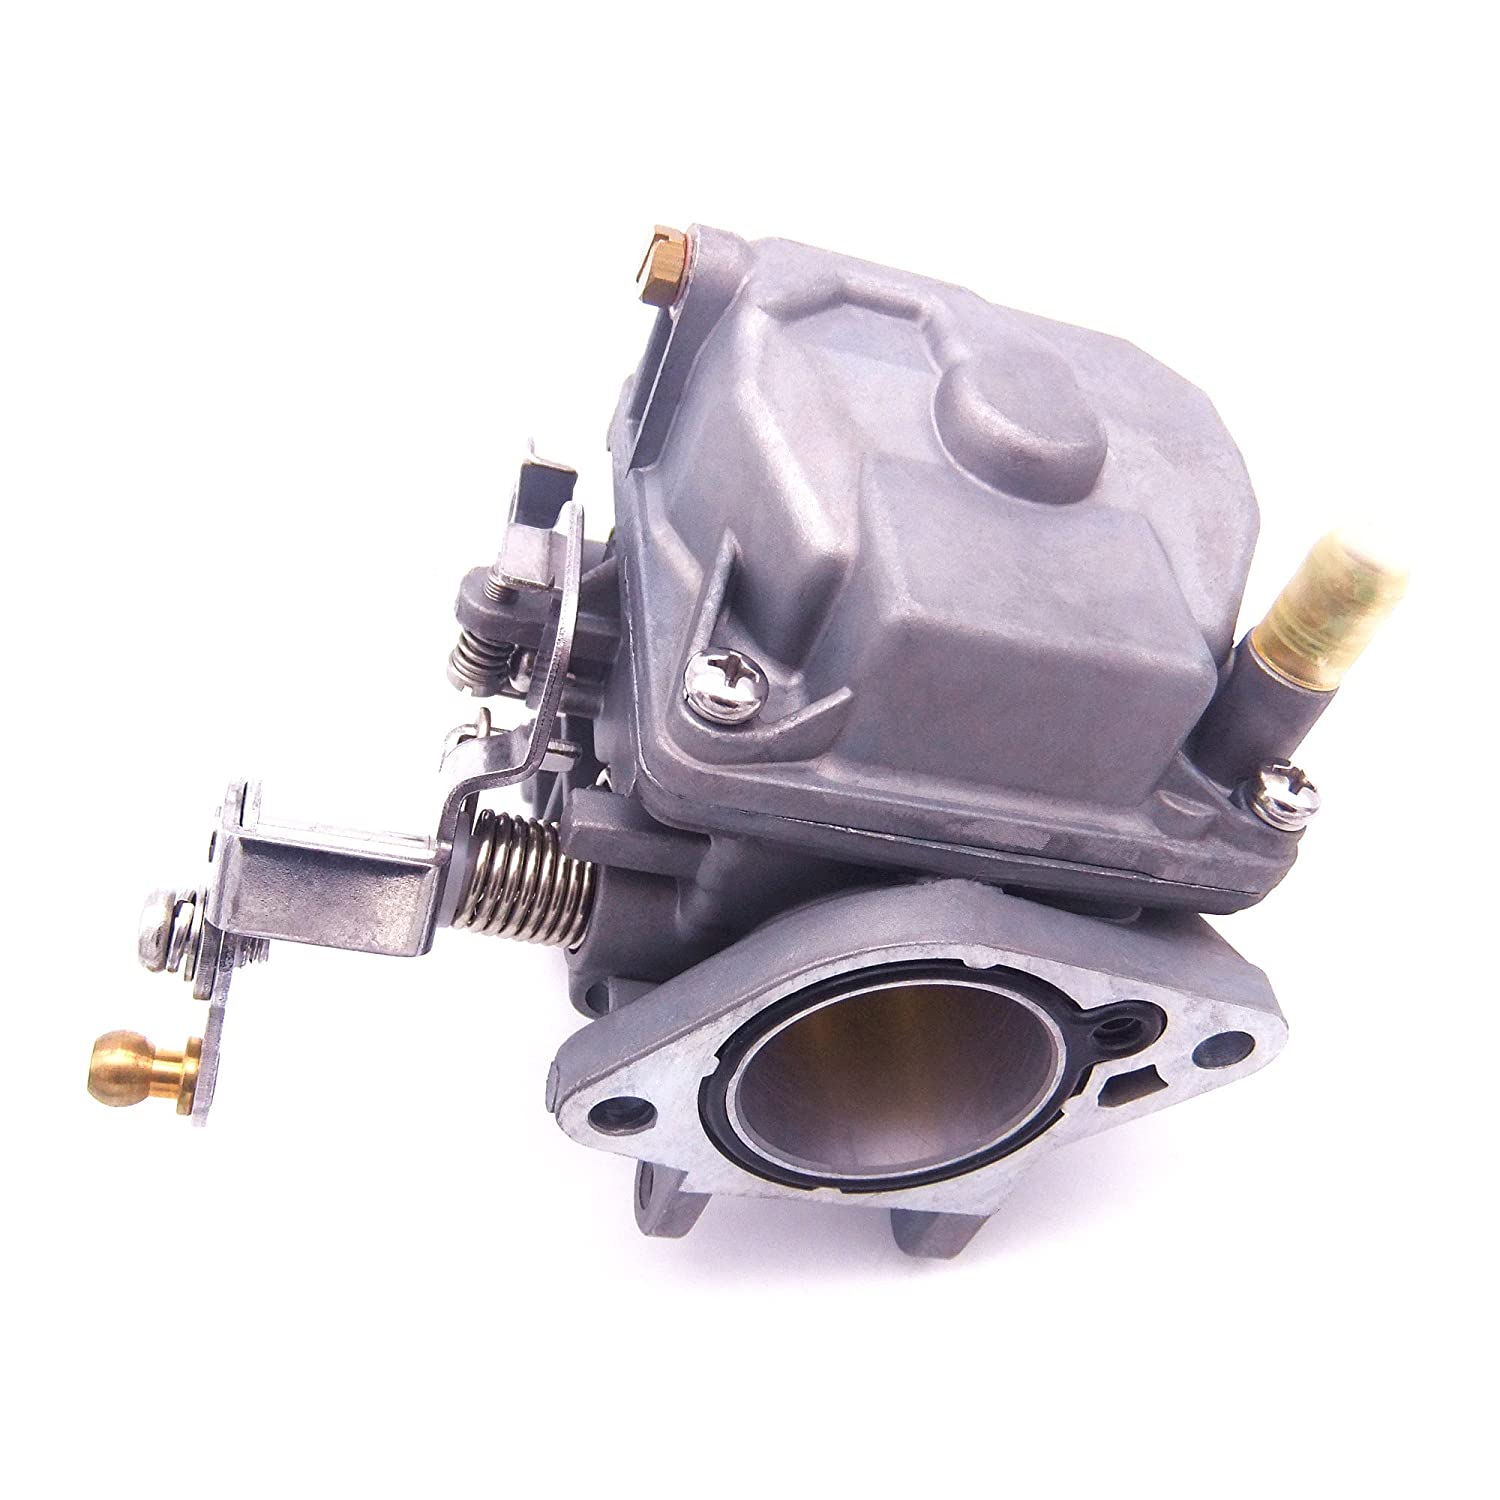 OEM AC3 NEW Idle Air Control Valve BUICK,CADILLAC,CHEVROLET,OLDSMOBILE *83-86